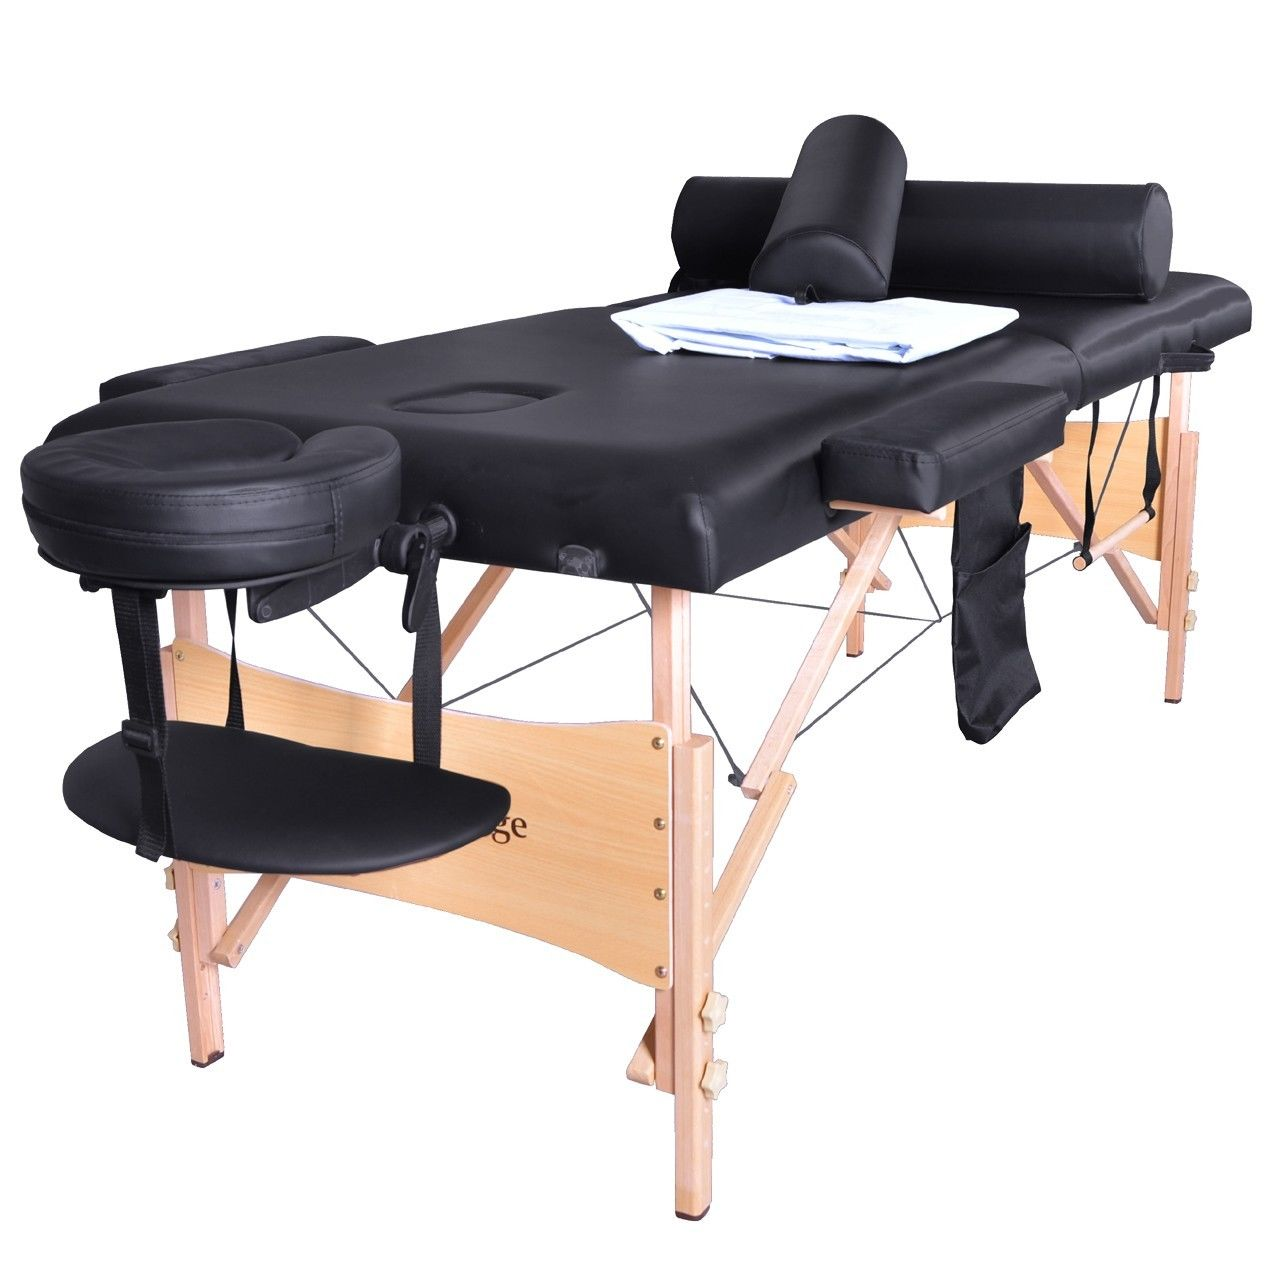 dp outdoors sports all portable inclusive ca table comfort sierra massage amazon